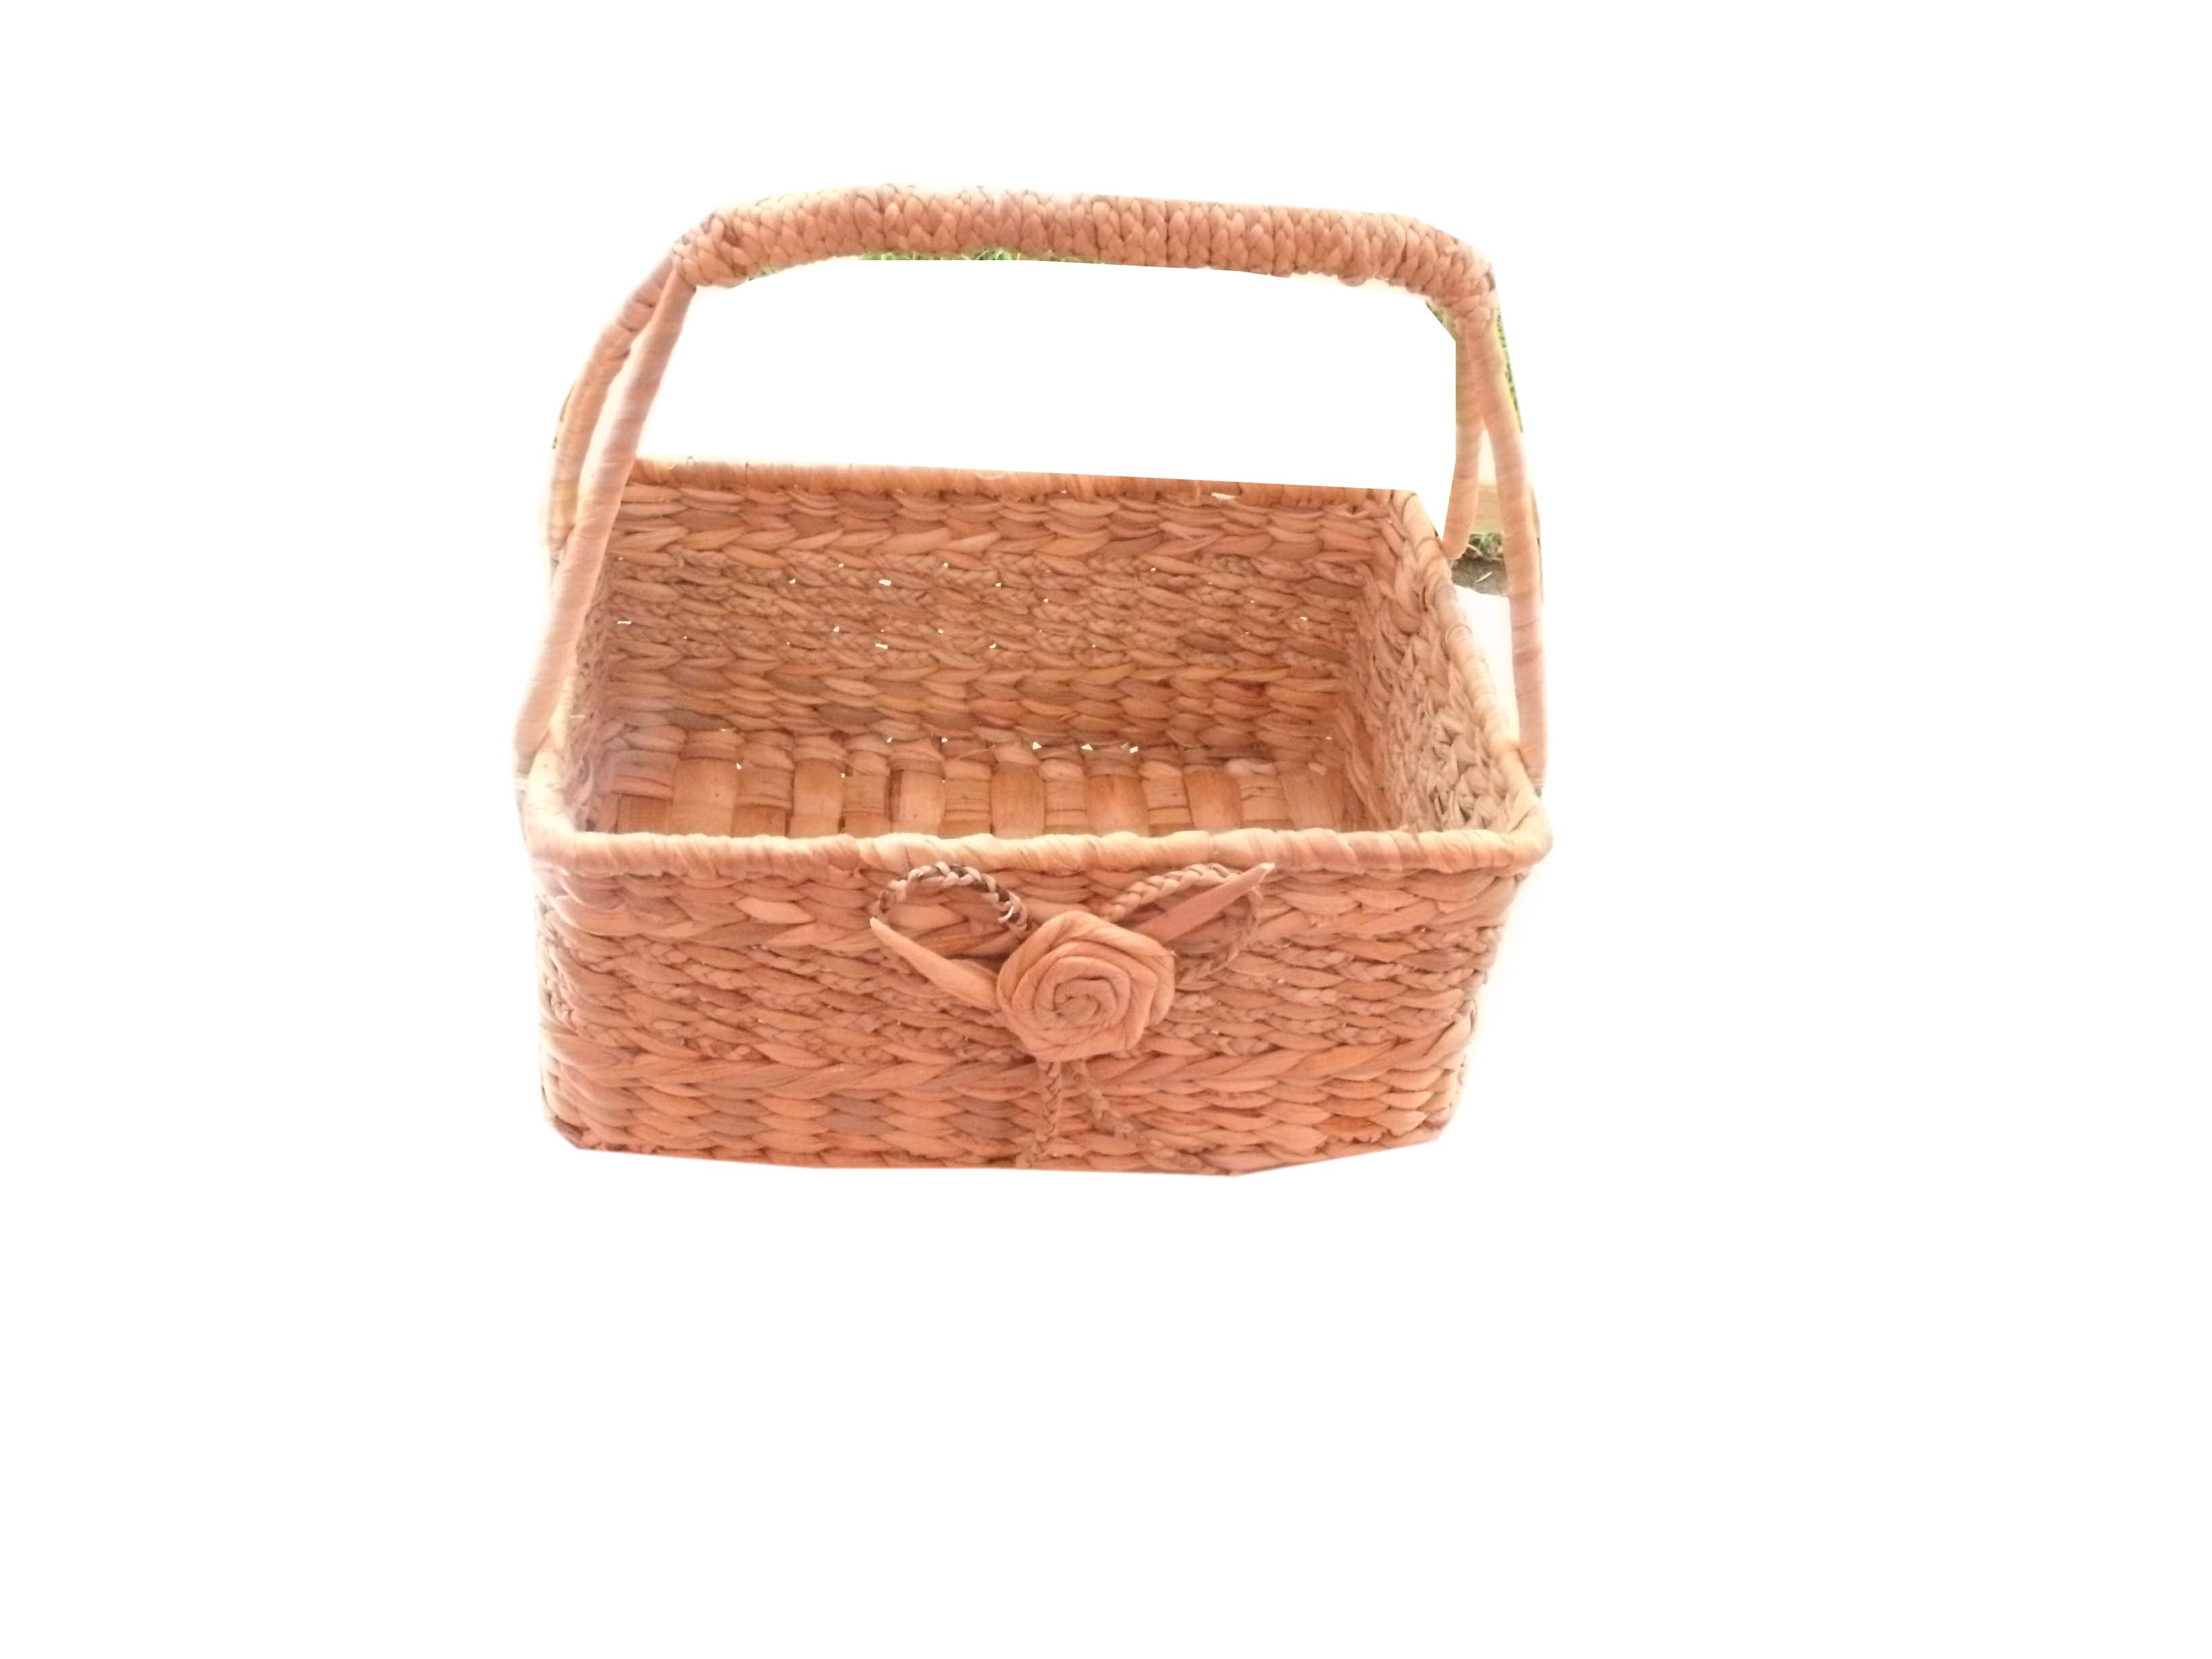 ้ัhyacinth baskets-11